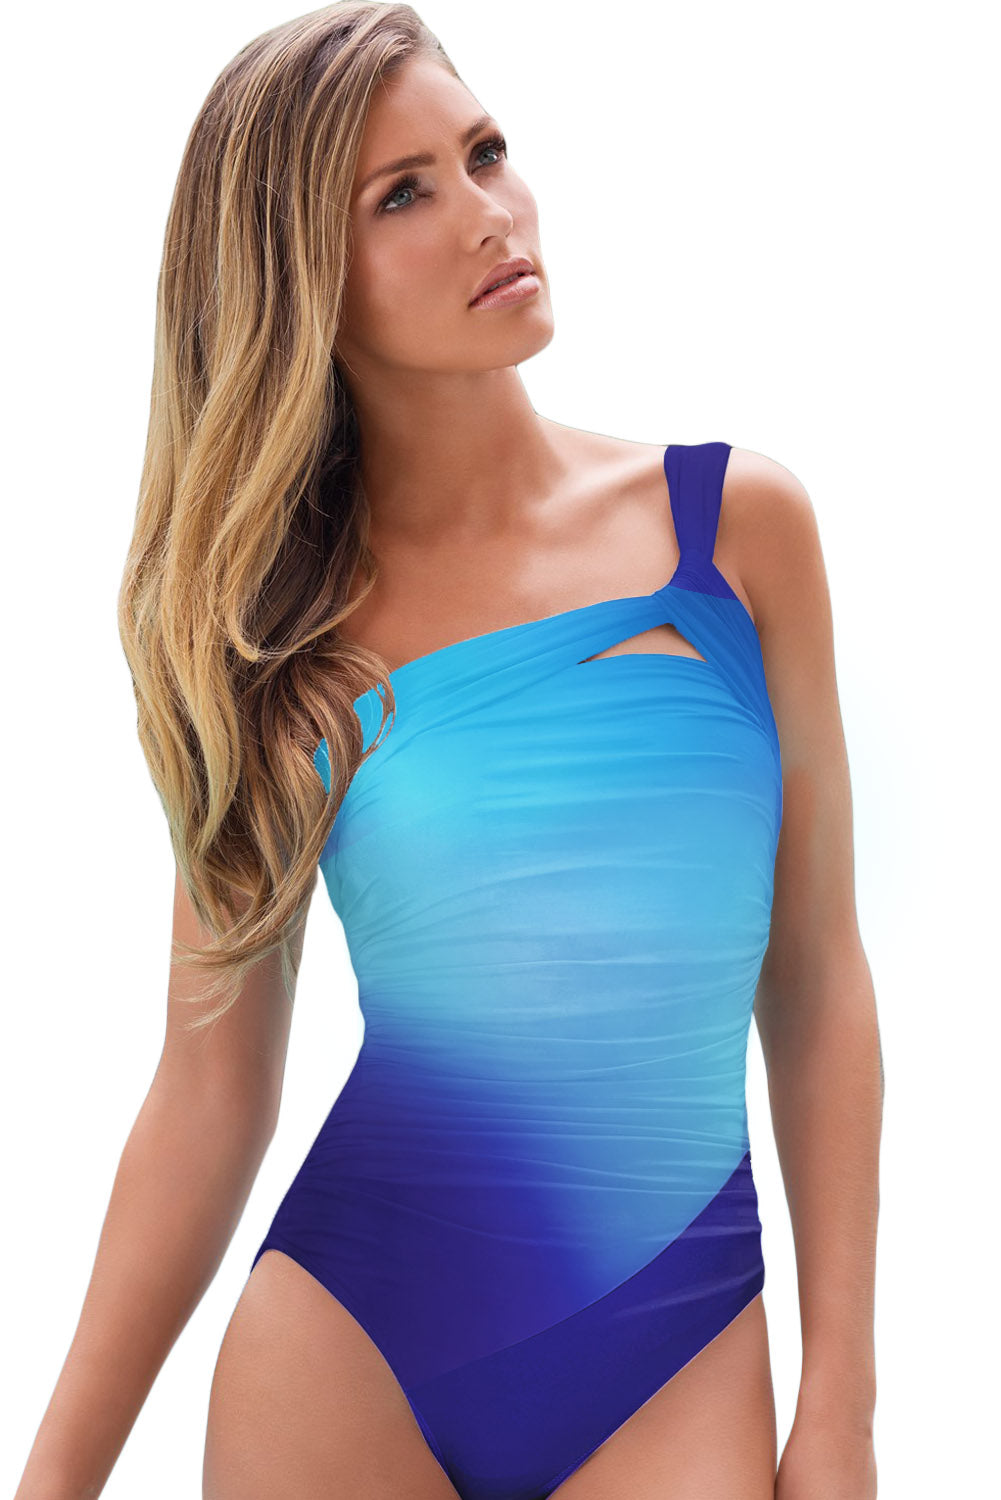 Sky Blue Gradient Color One-shoulder Maillot